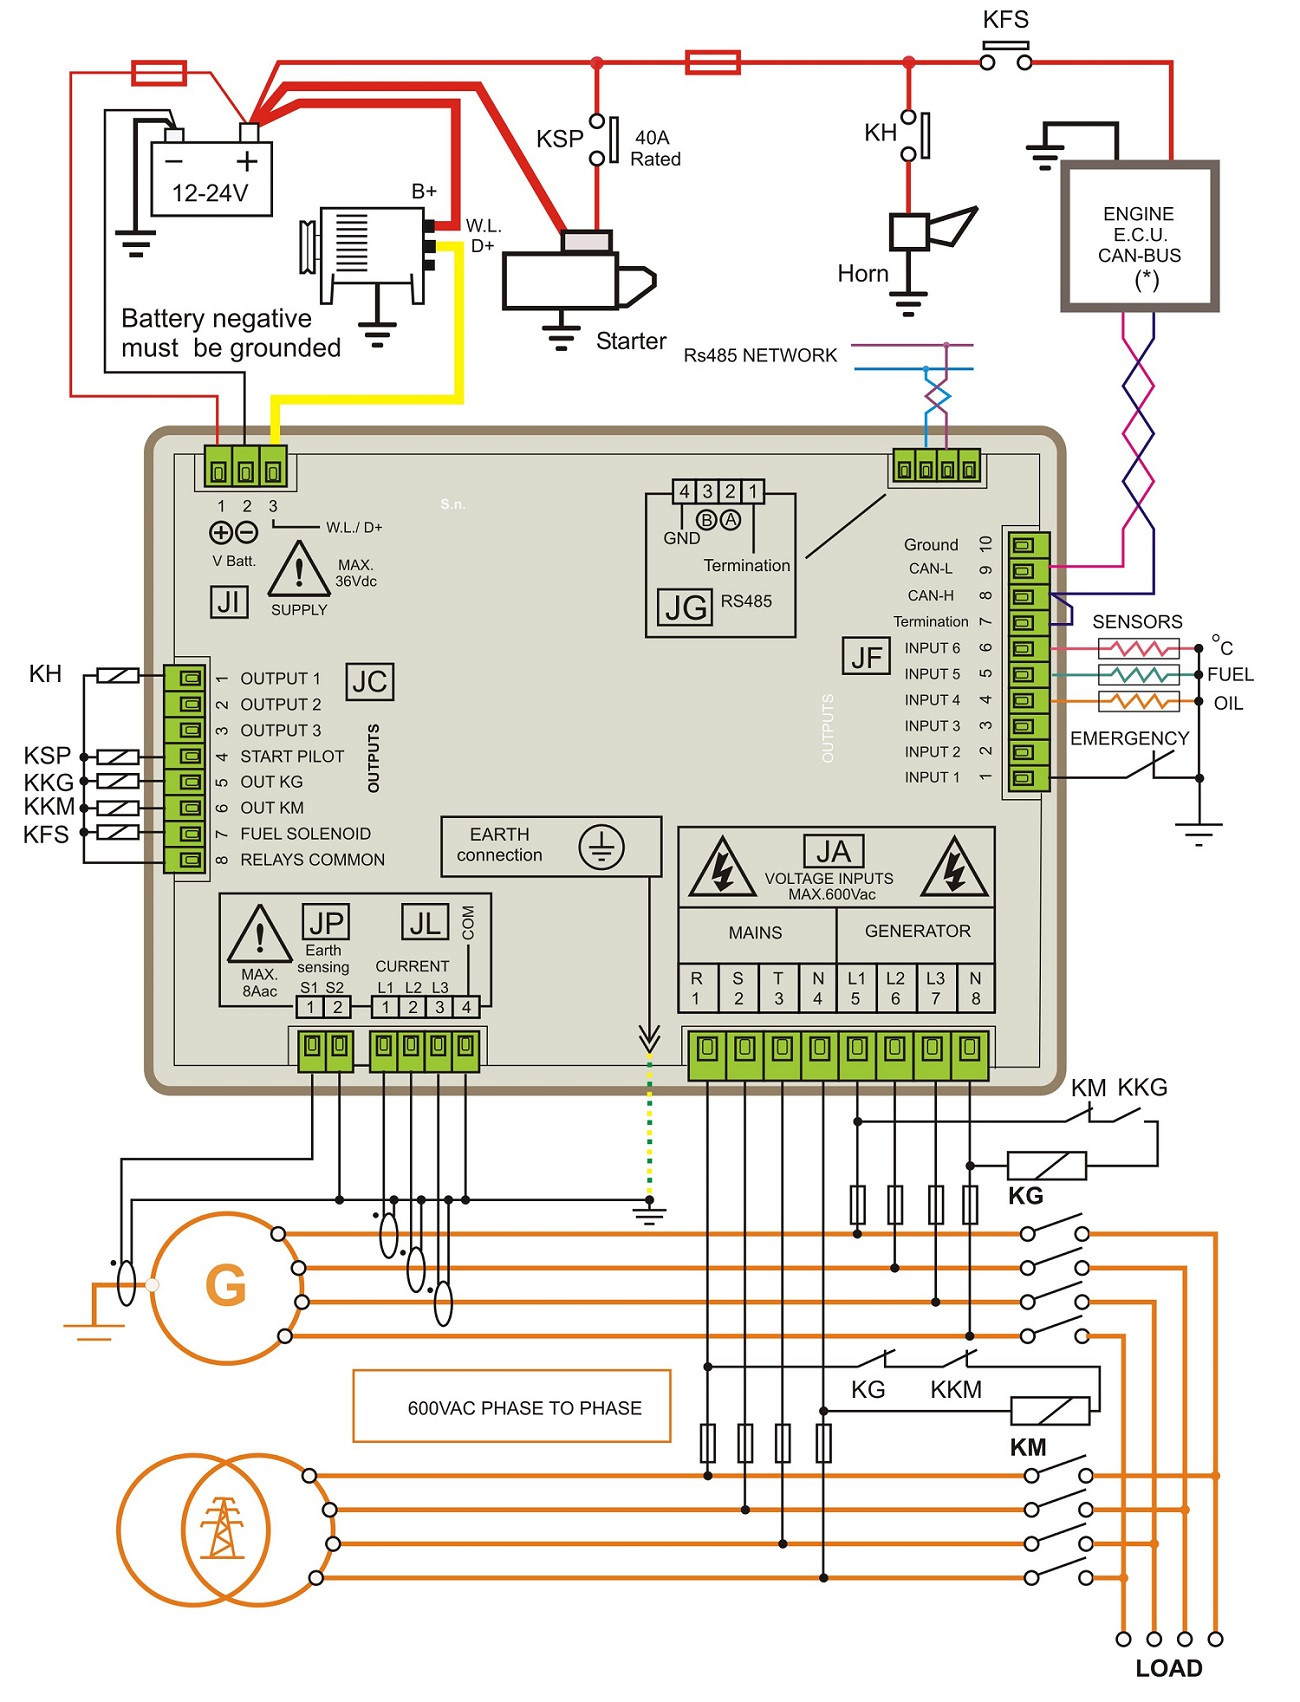 Ups Maintenance bypass Switch Wiring Diagram - Wiring Diagram for Ups  bypass Switch Fresh Fine Ups